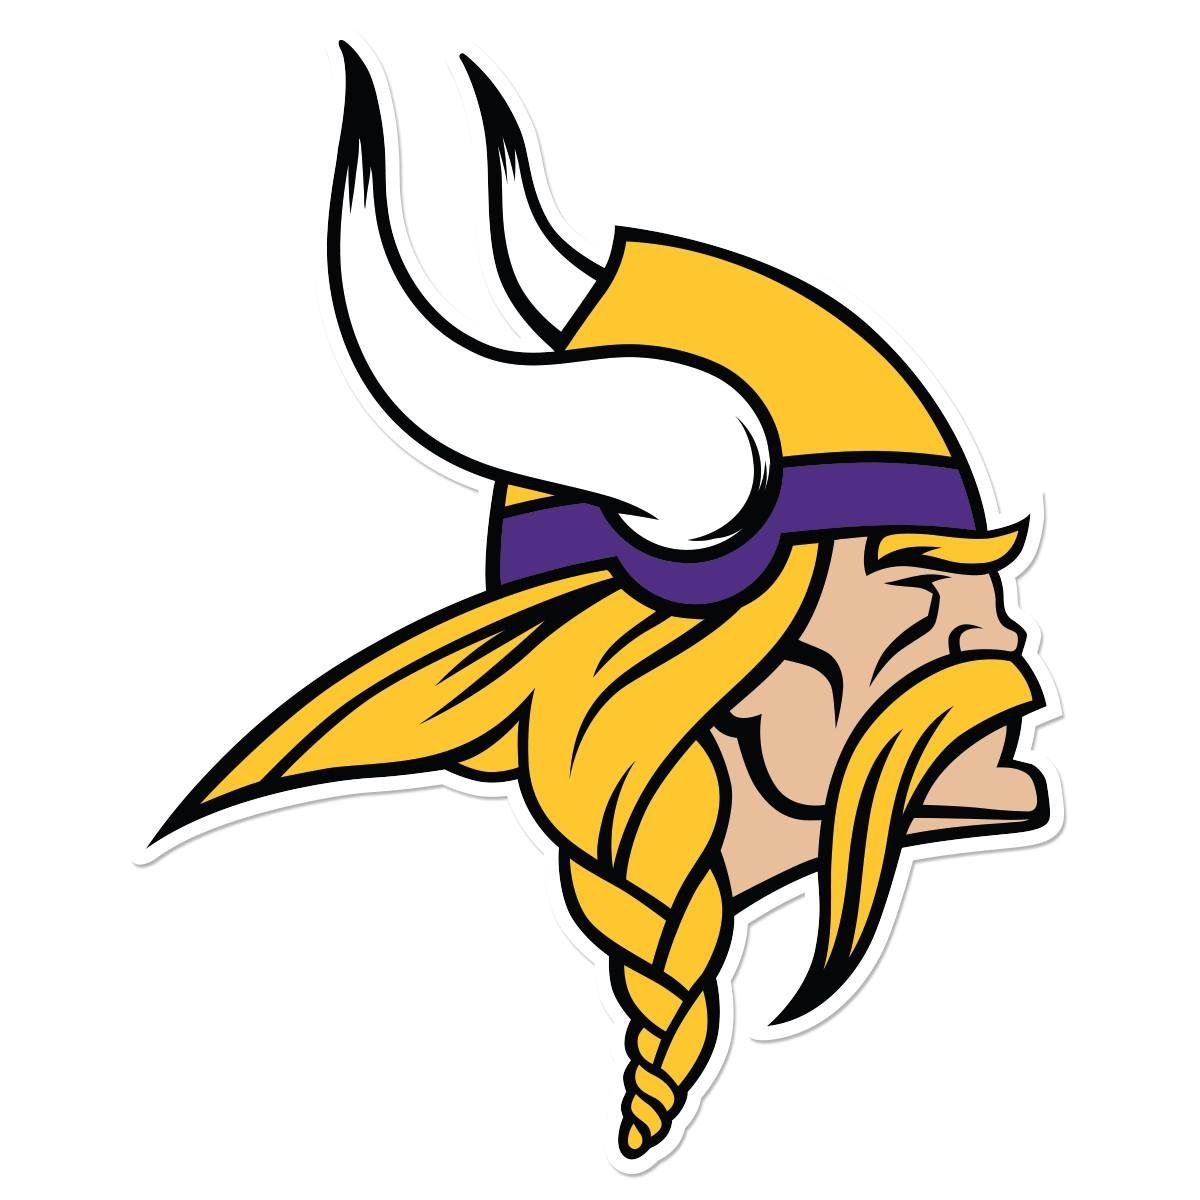 Logo skol clipart jpg free stock The Vikings - Skol | Sports | Minnesota Vikings, Vikings jpg free stock